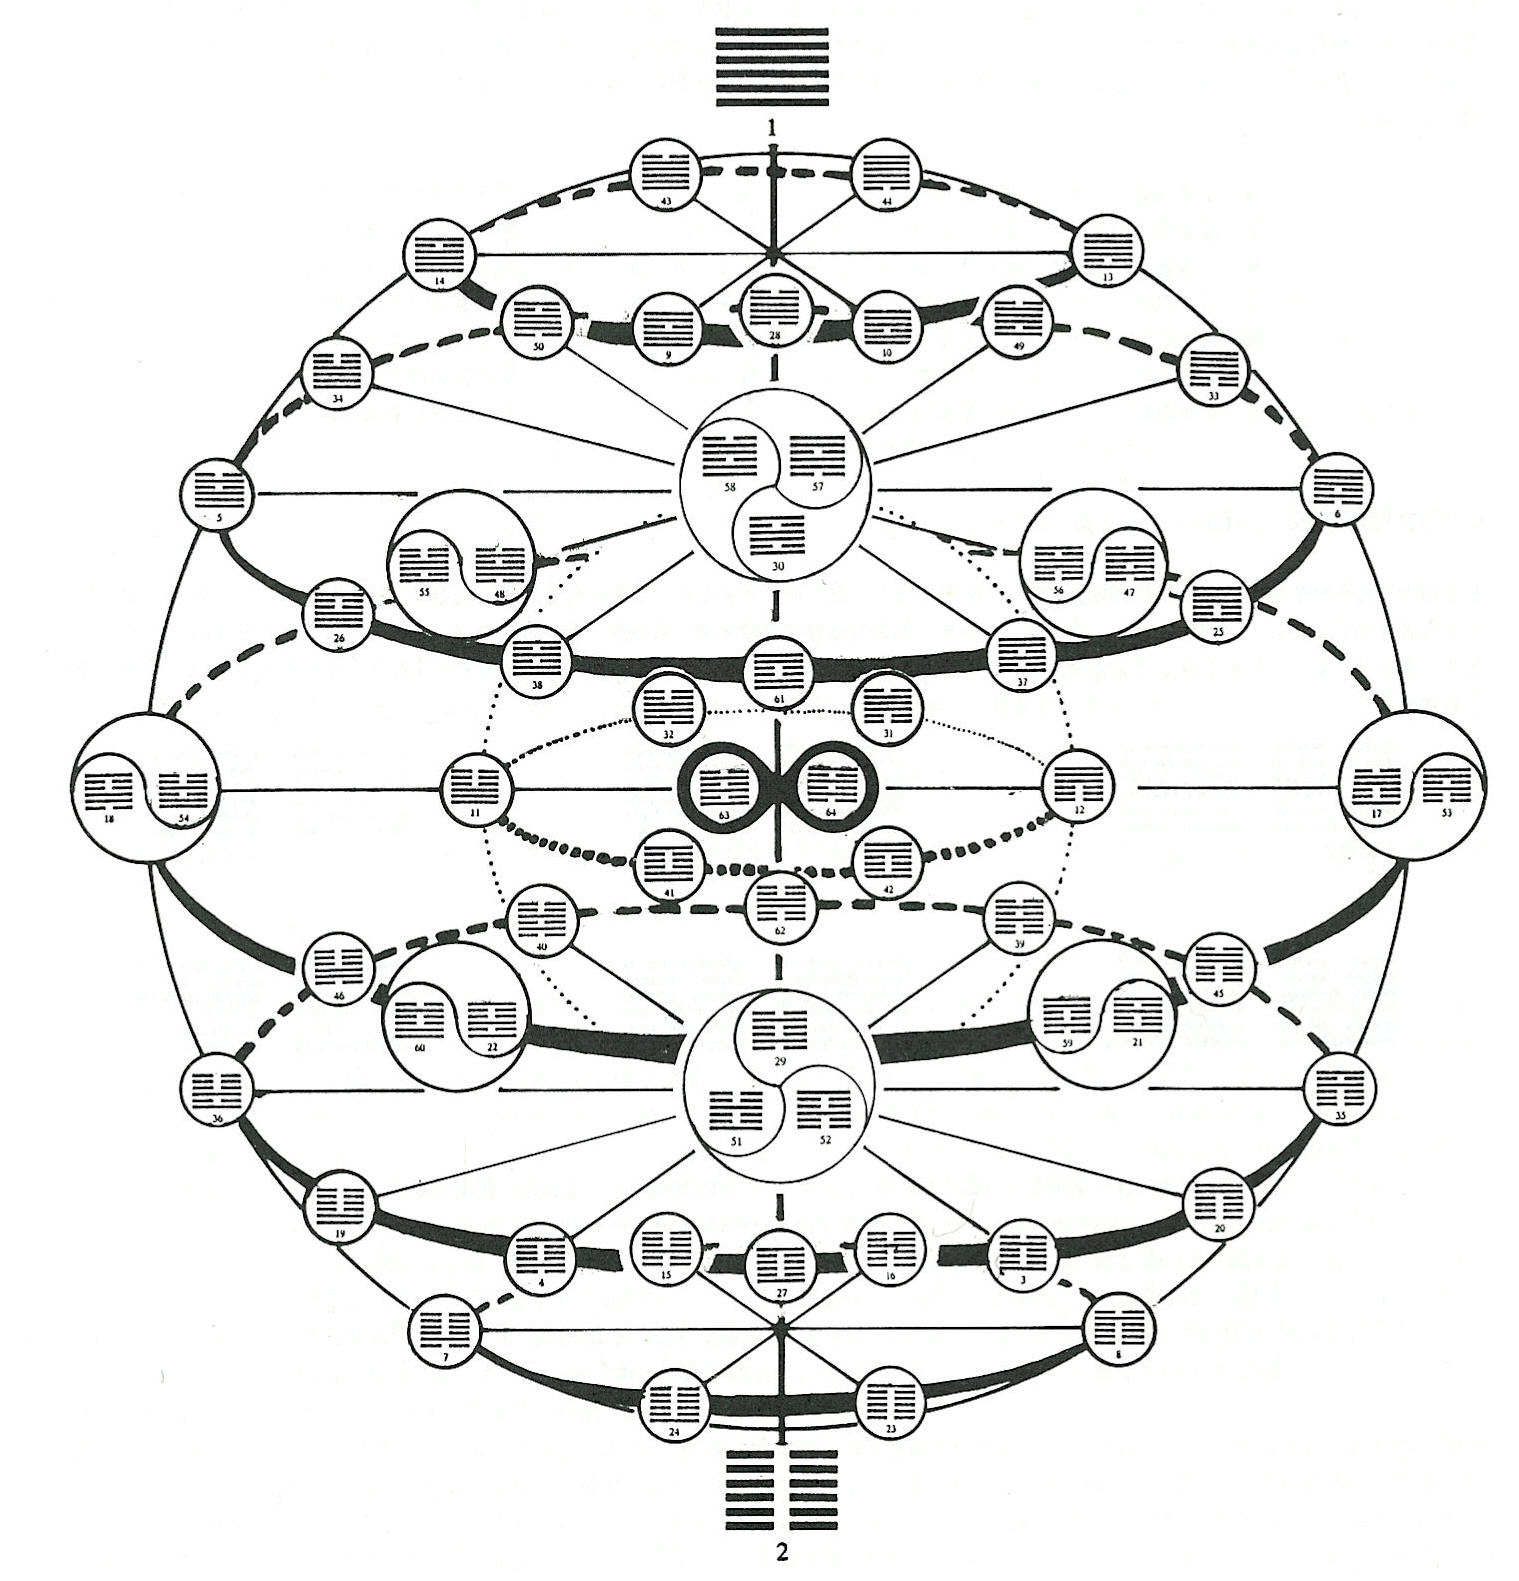 Energetics and the I'Ching . Laurel Hill Workshop Human Design . img source unknown